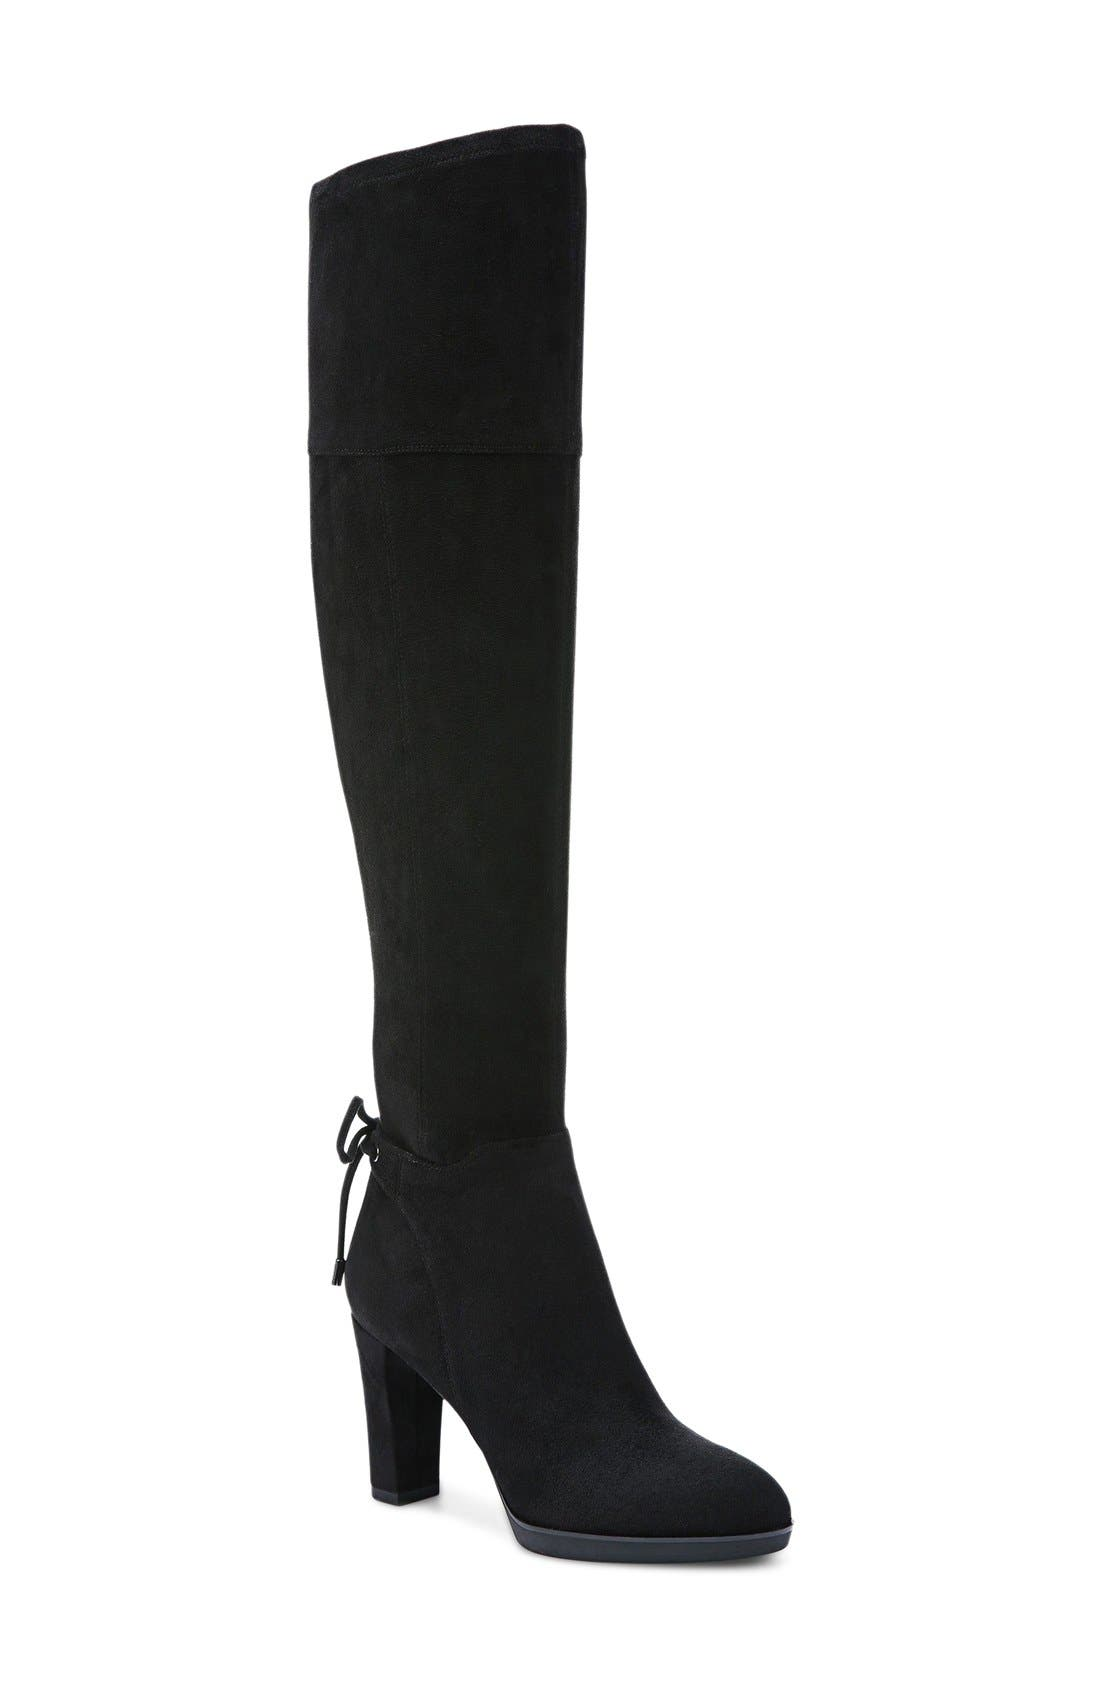 Ivanea Over the Knee Boot,                             Main thumbnail 1, color,                             001